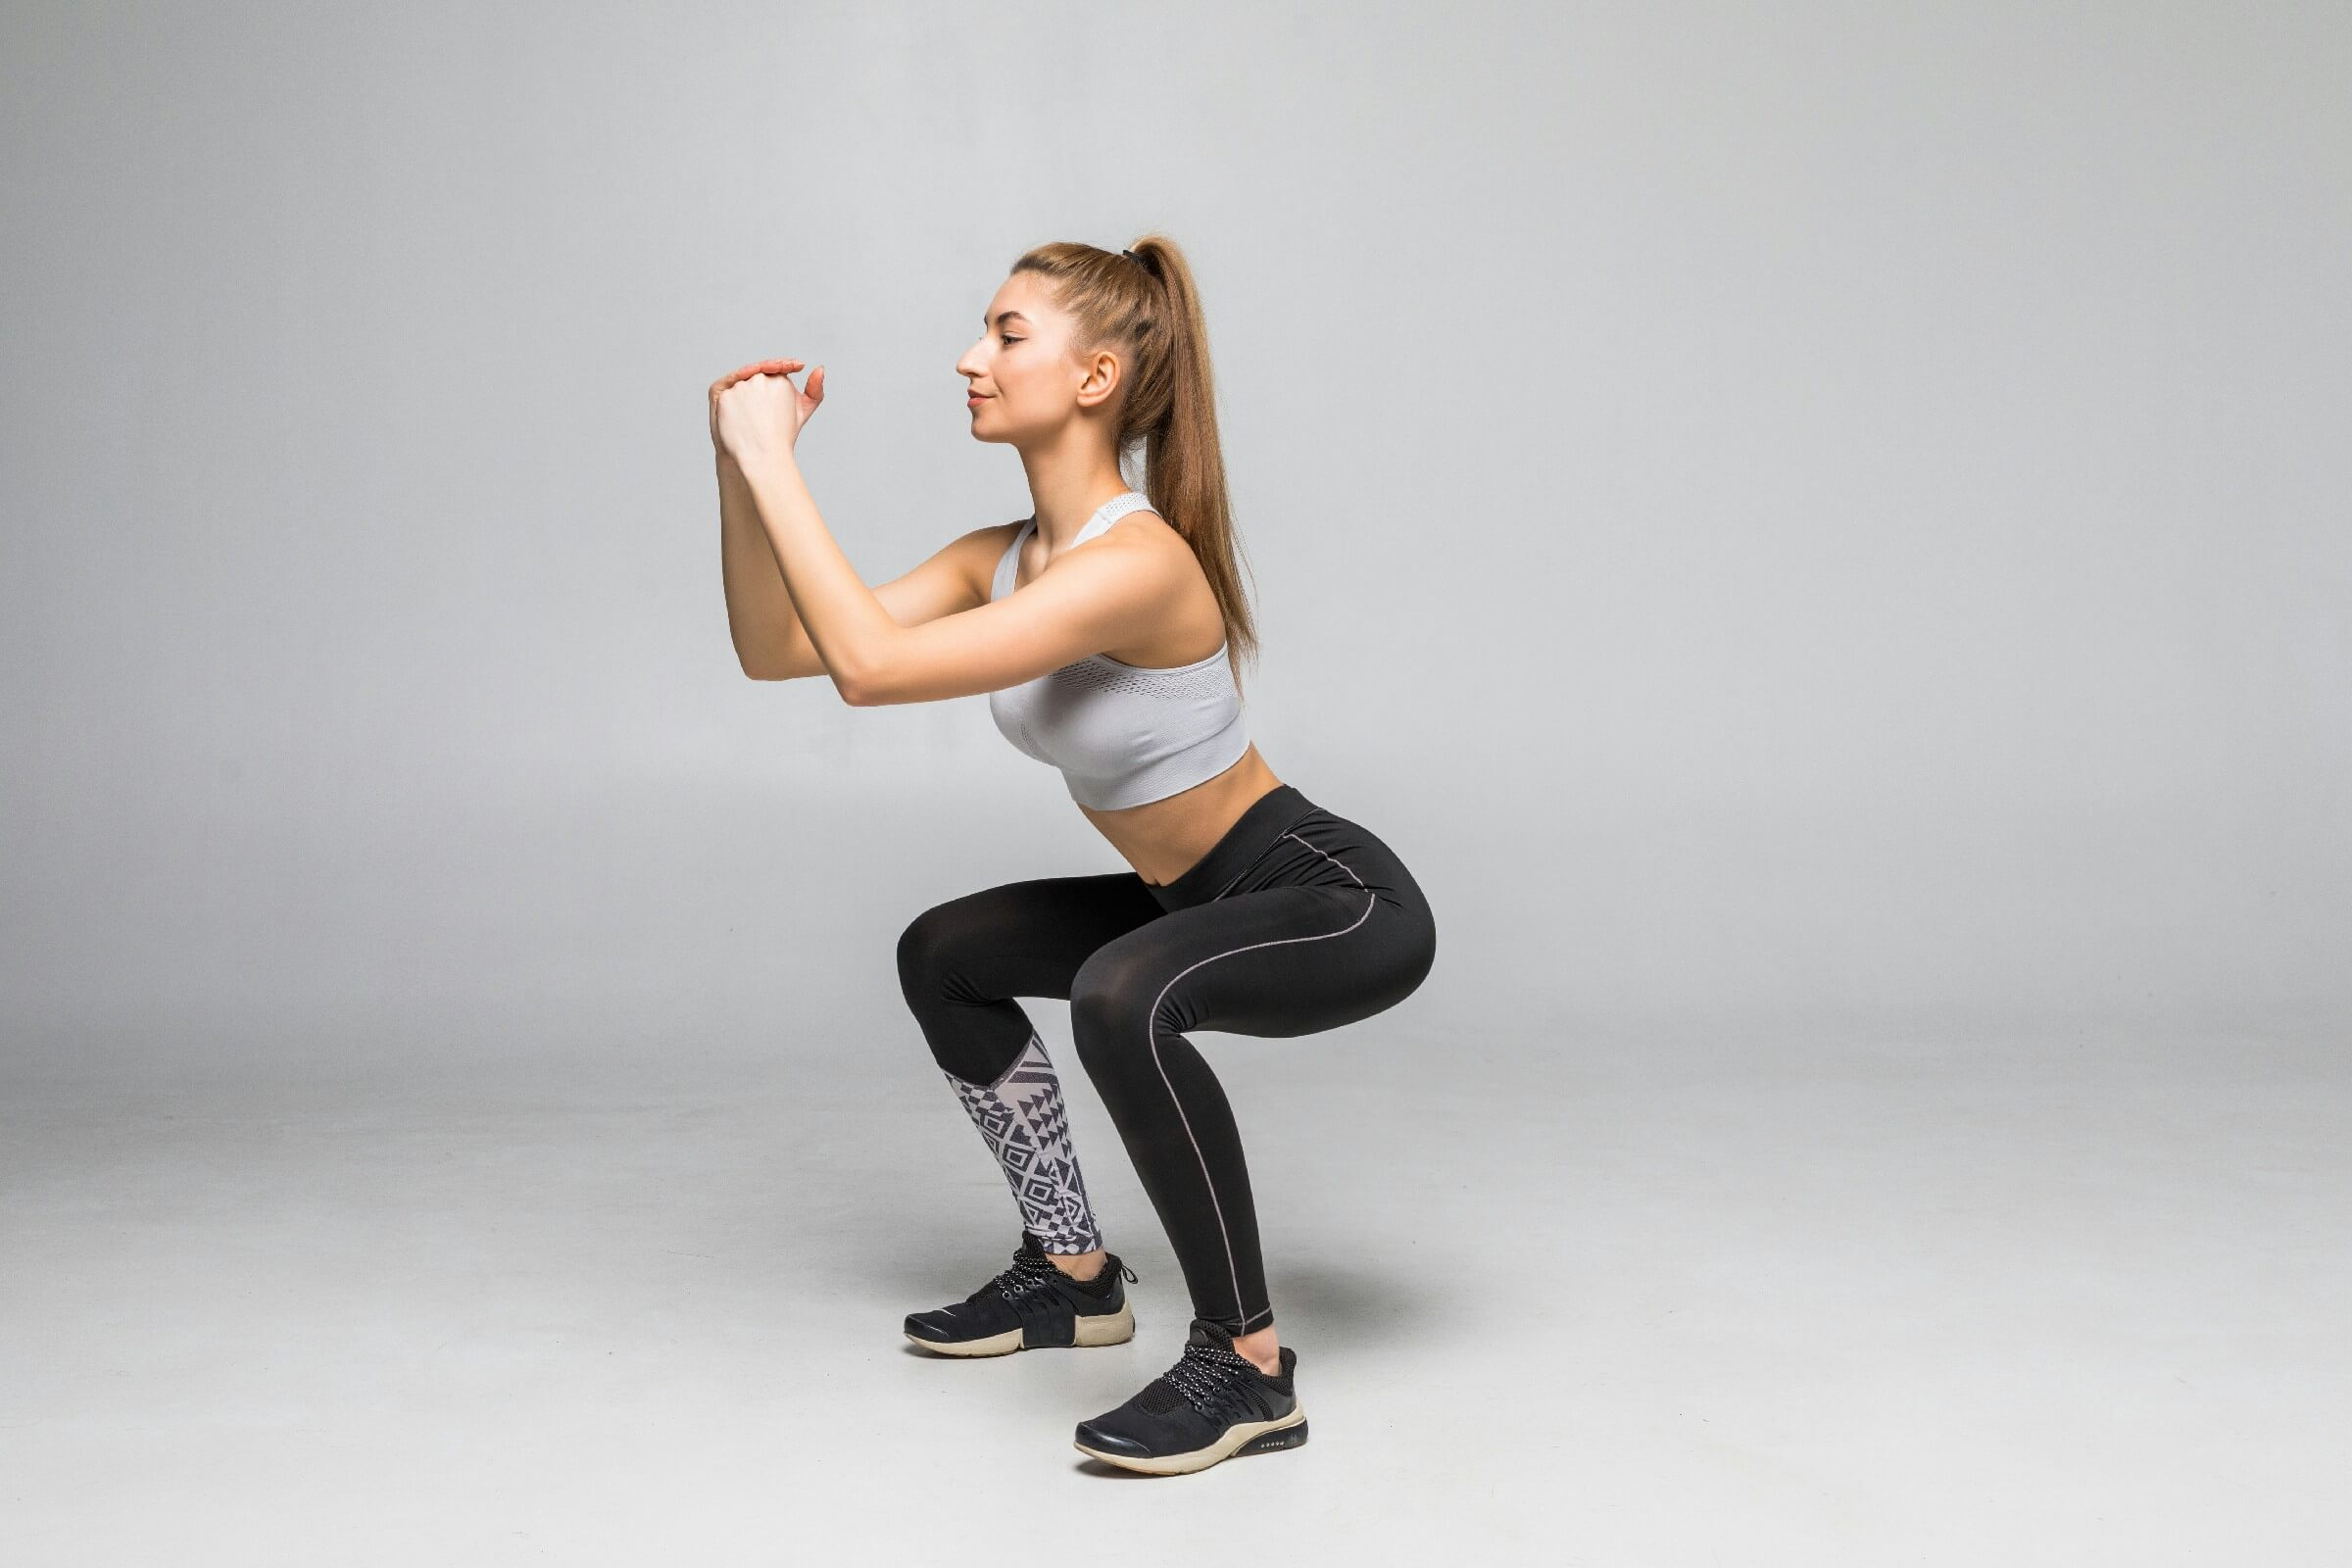 Why Good Morning Exercise Is the Best Way for Living Life Healthy